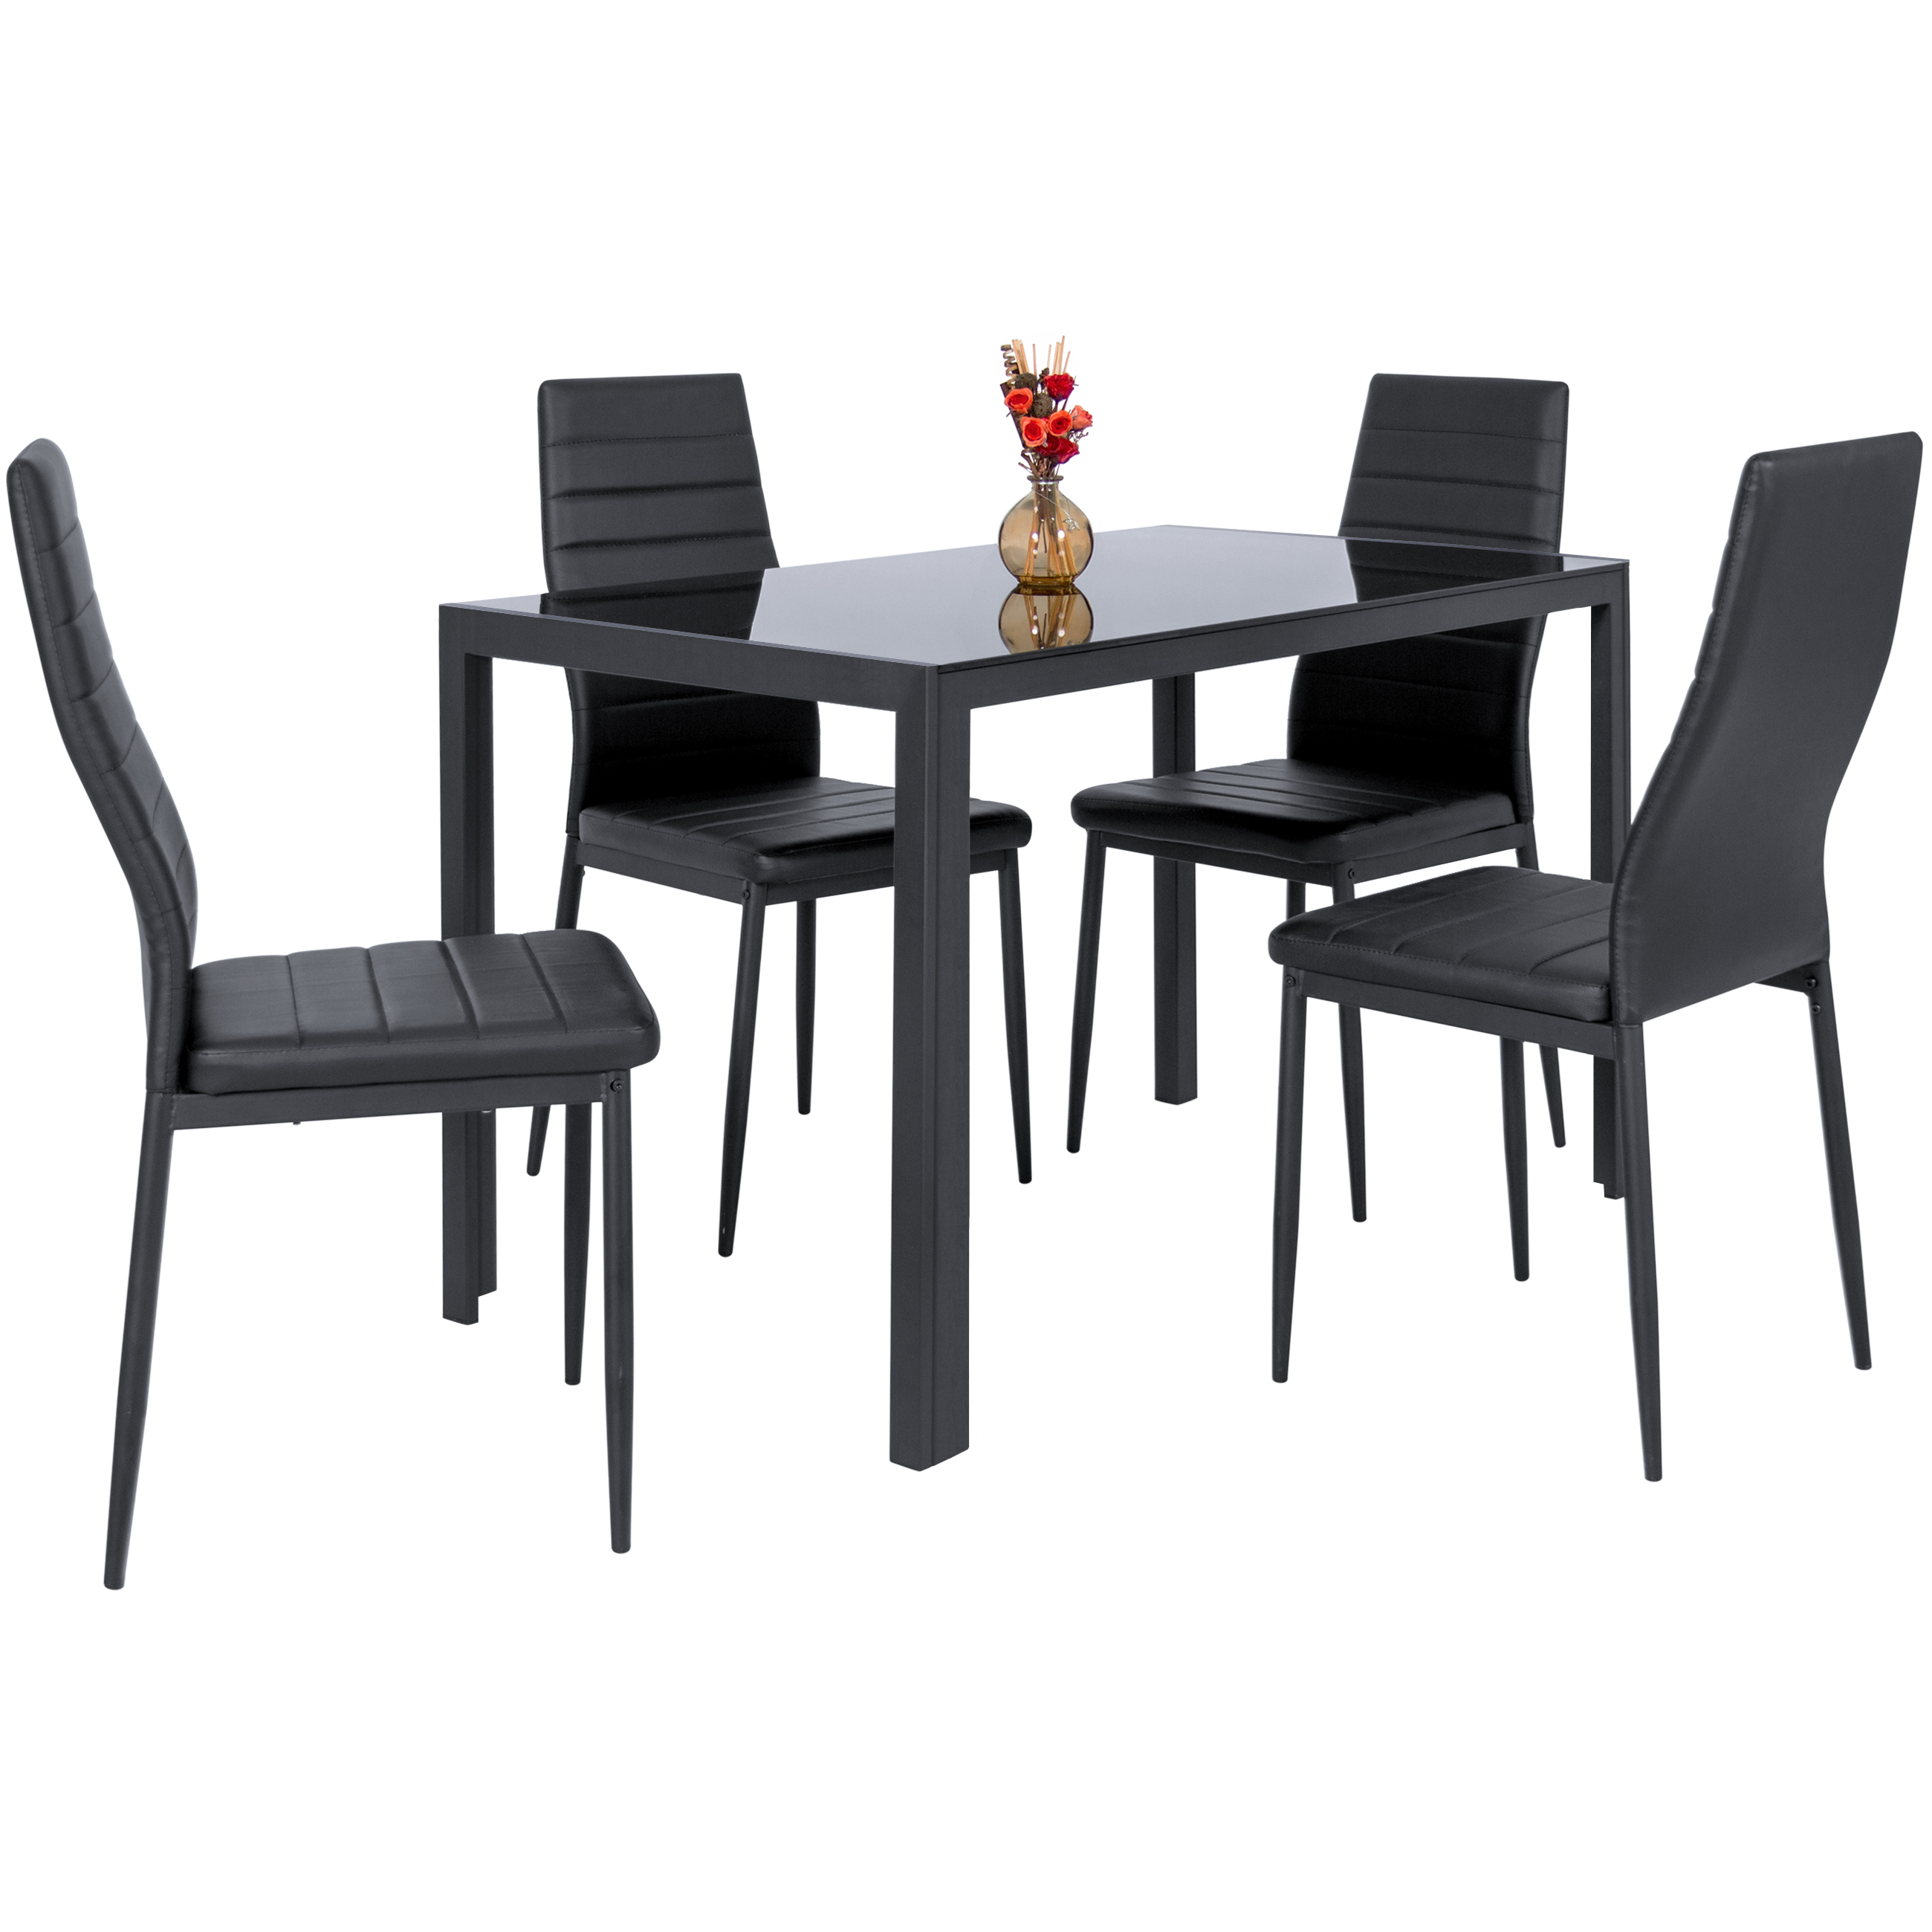 2dc3916e79 Best Choice Products 5-Piece Kitchen Dining Table Set w/ Glass Tabletop, 4  Faux Leather Metal Frame Chairs for Dining Room, Kitchen, Dinette - Black  ...